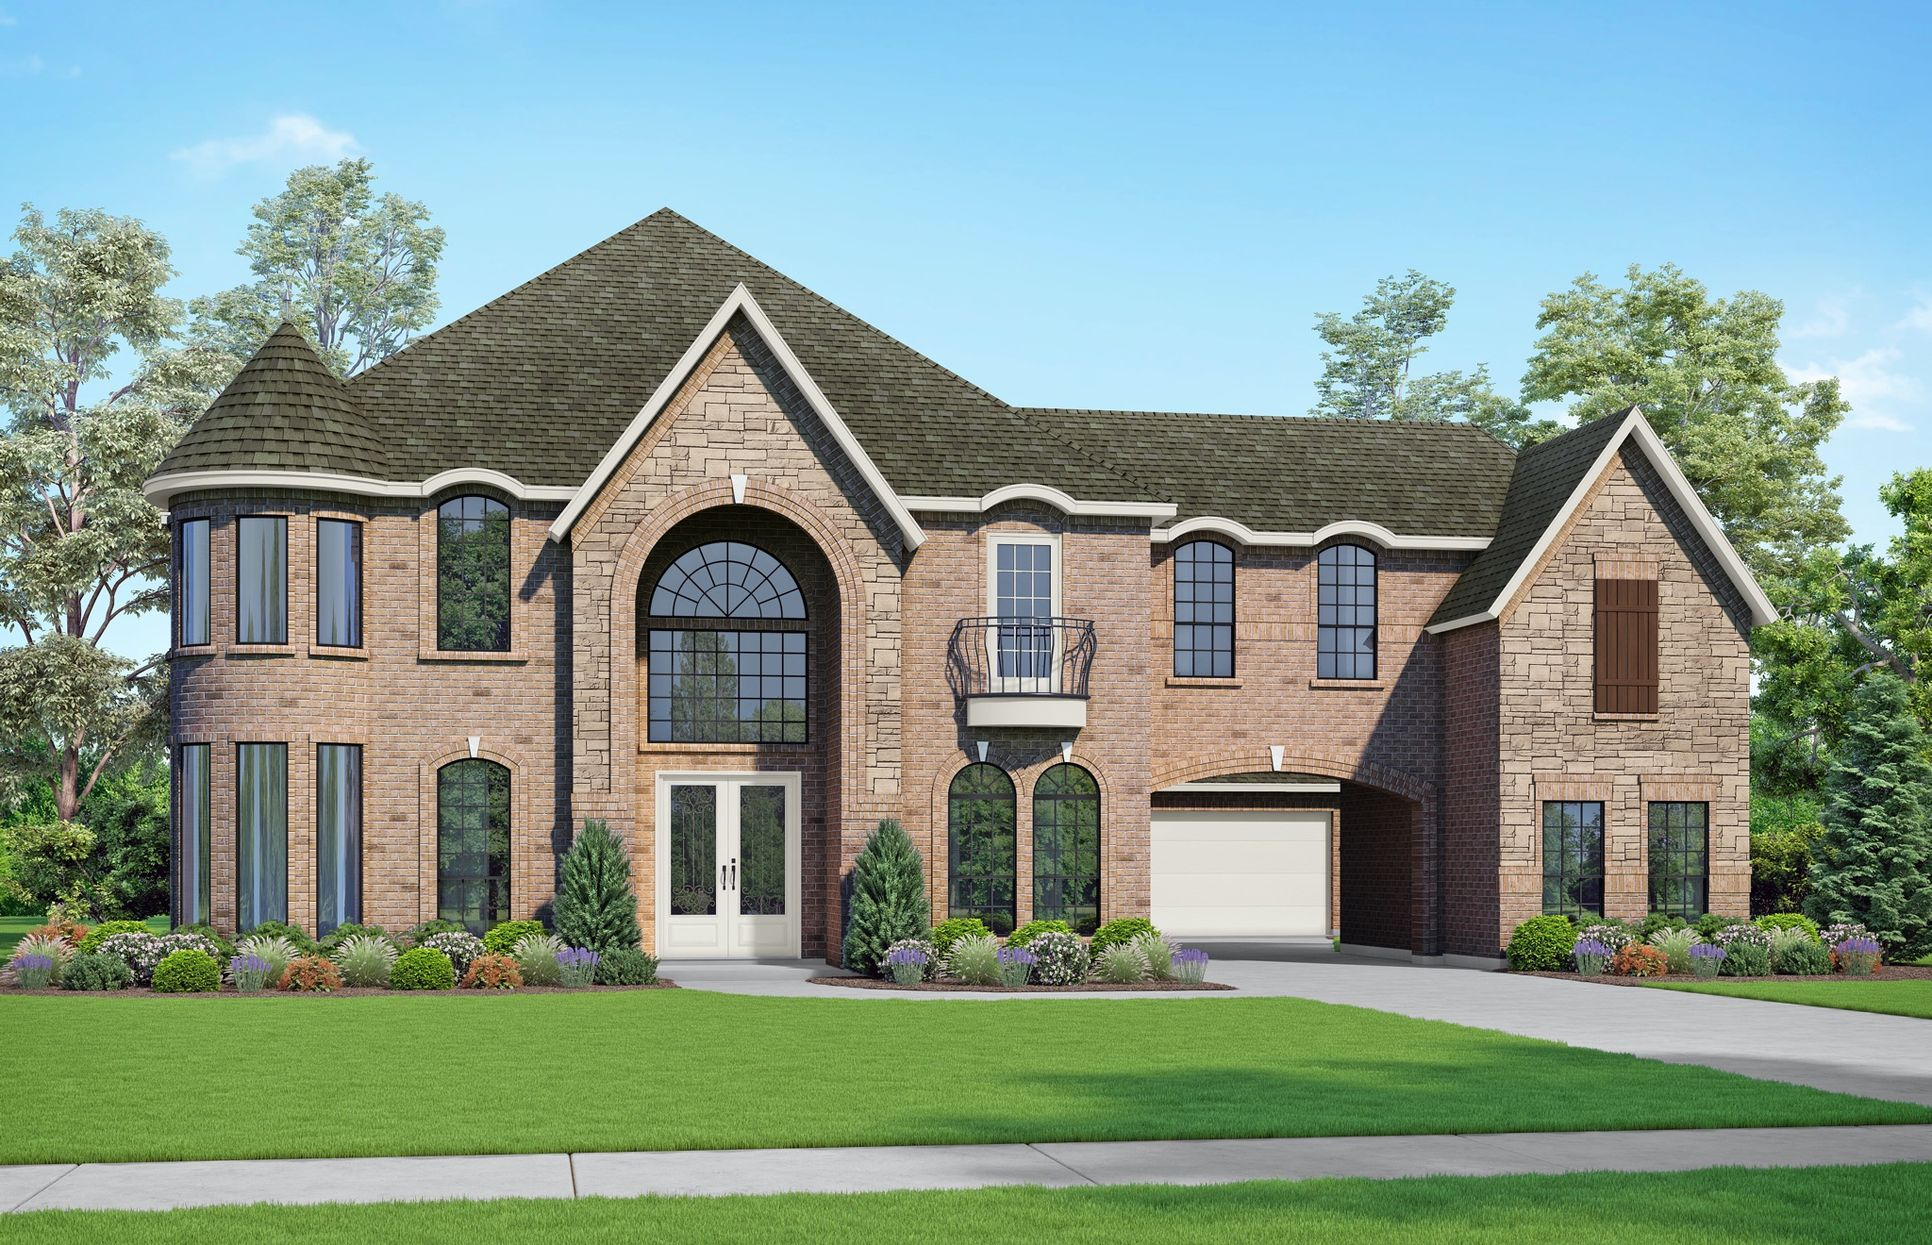 Mico II Elevation S1. Images are artist renderings and will differ from the actual home built.:Mico II Elevation S1